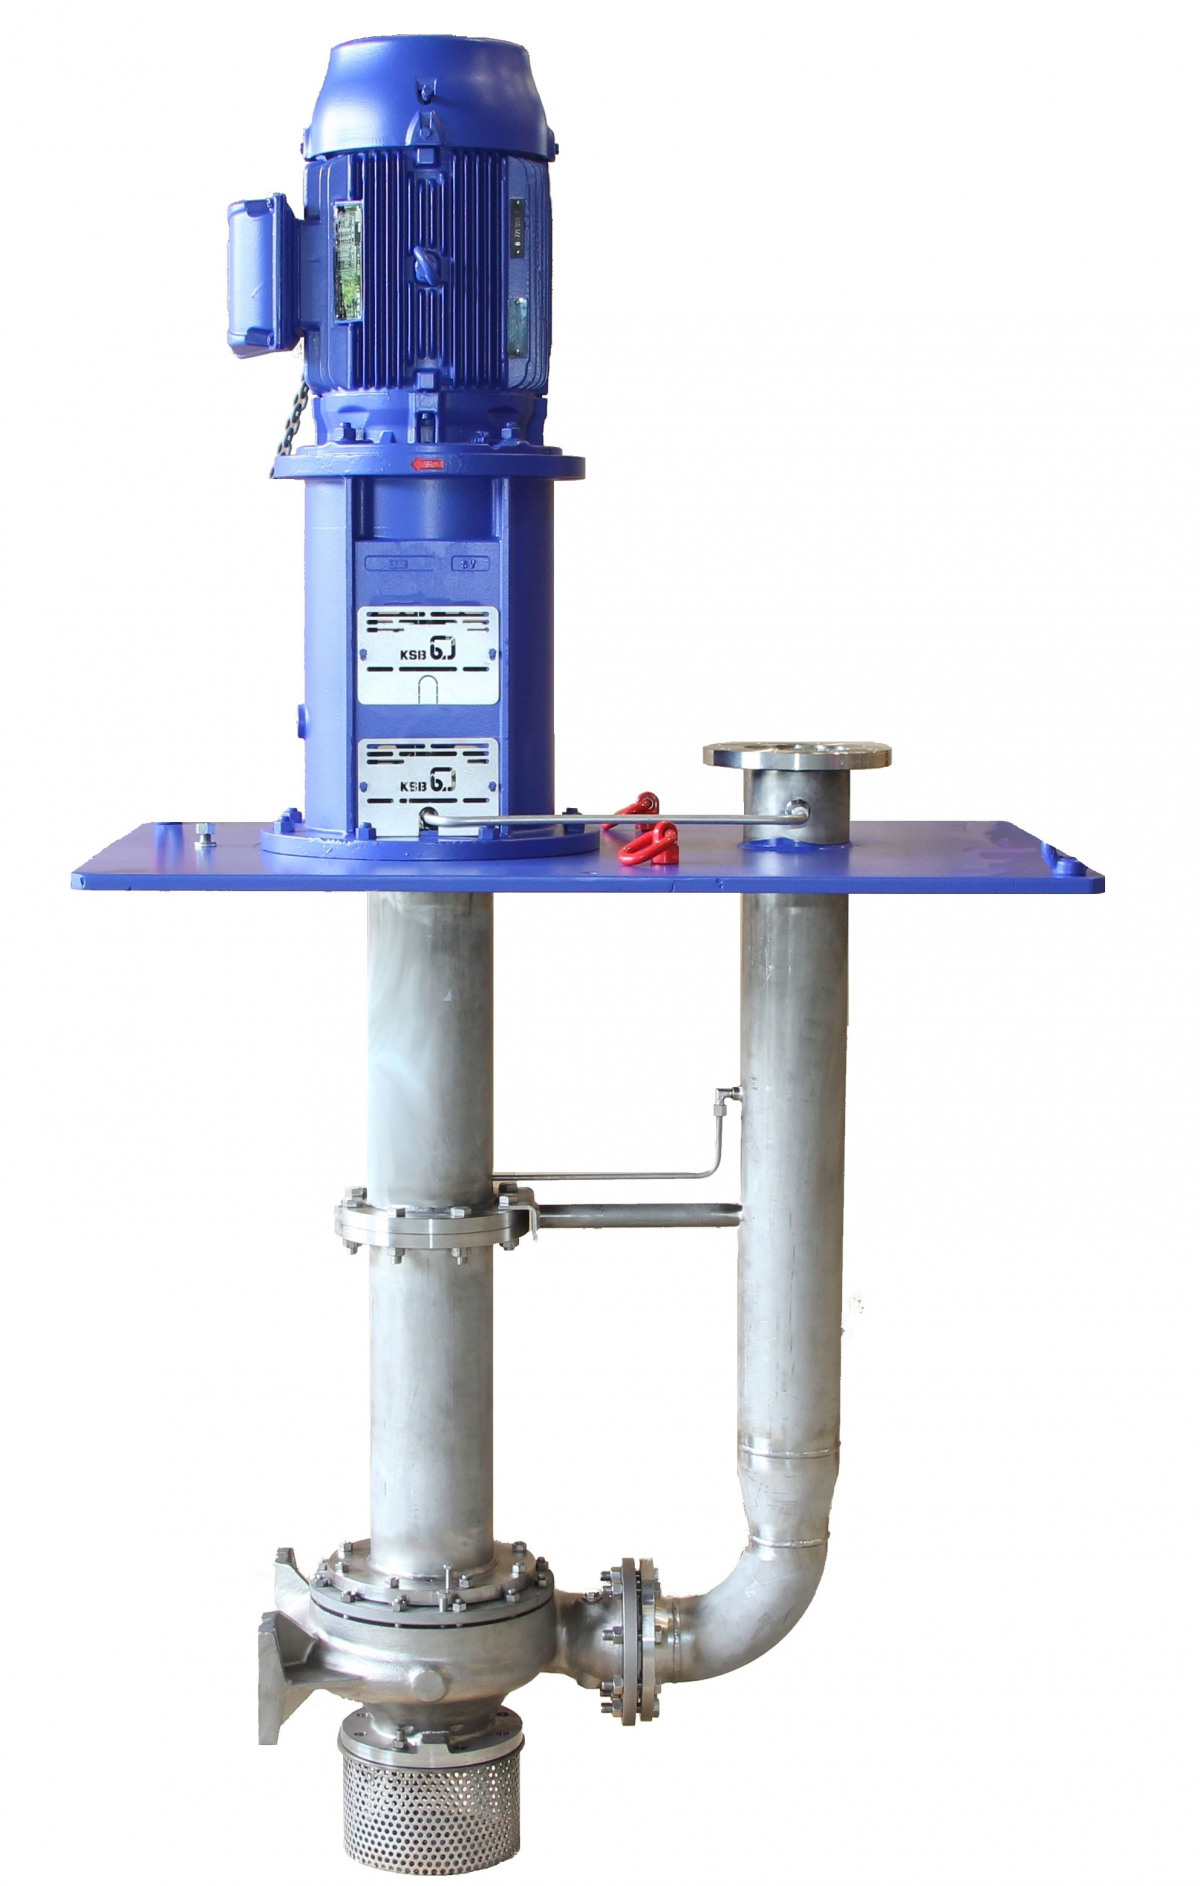 New suspended pumps with the hydraulic system of standardised chemical pumps